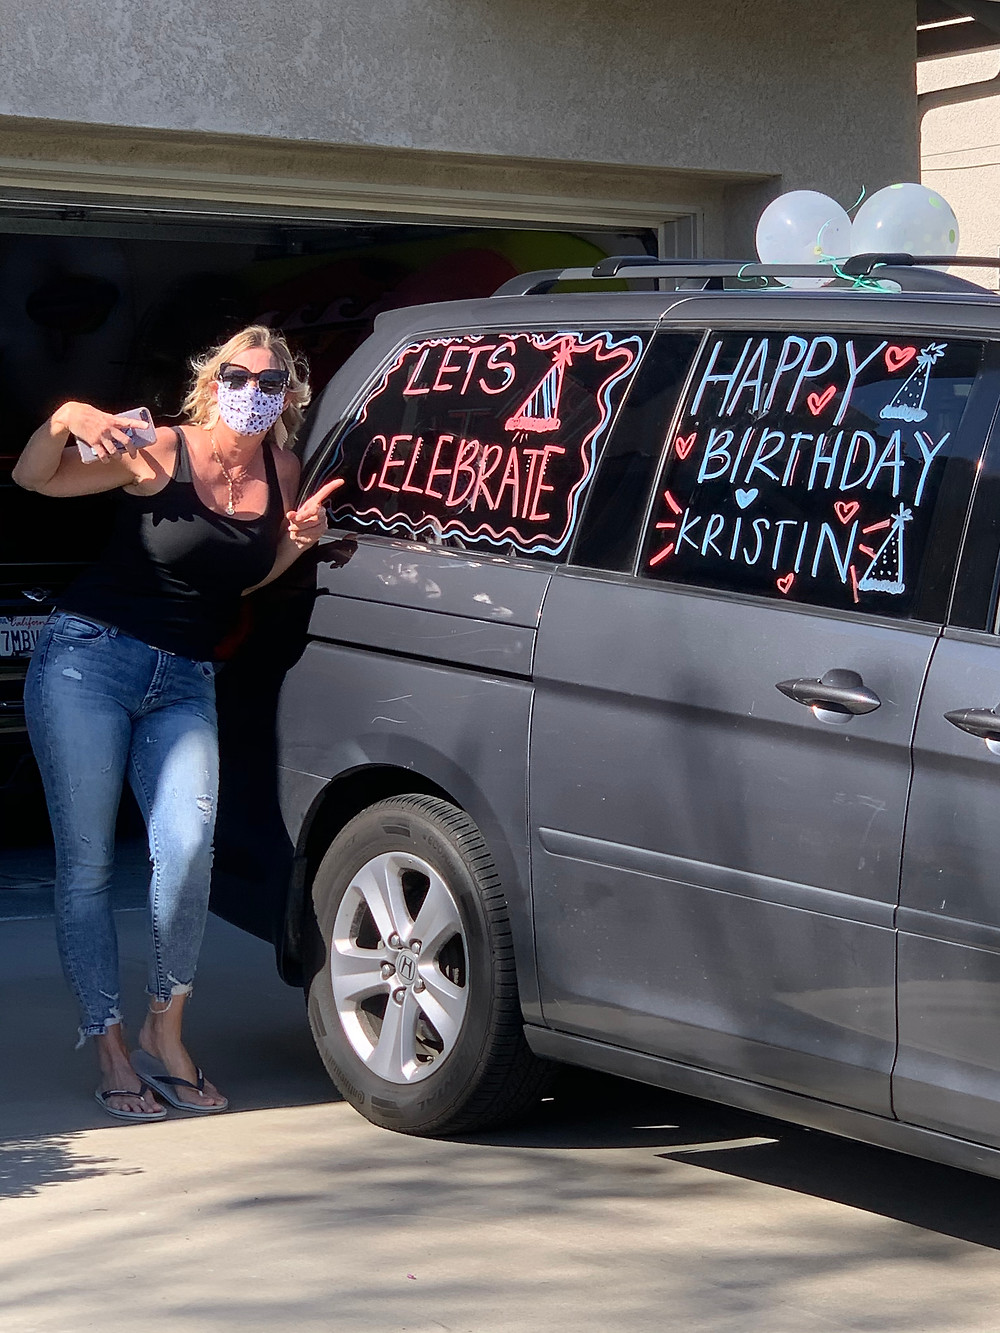 Mom with a minivan decorated for a birthday